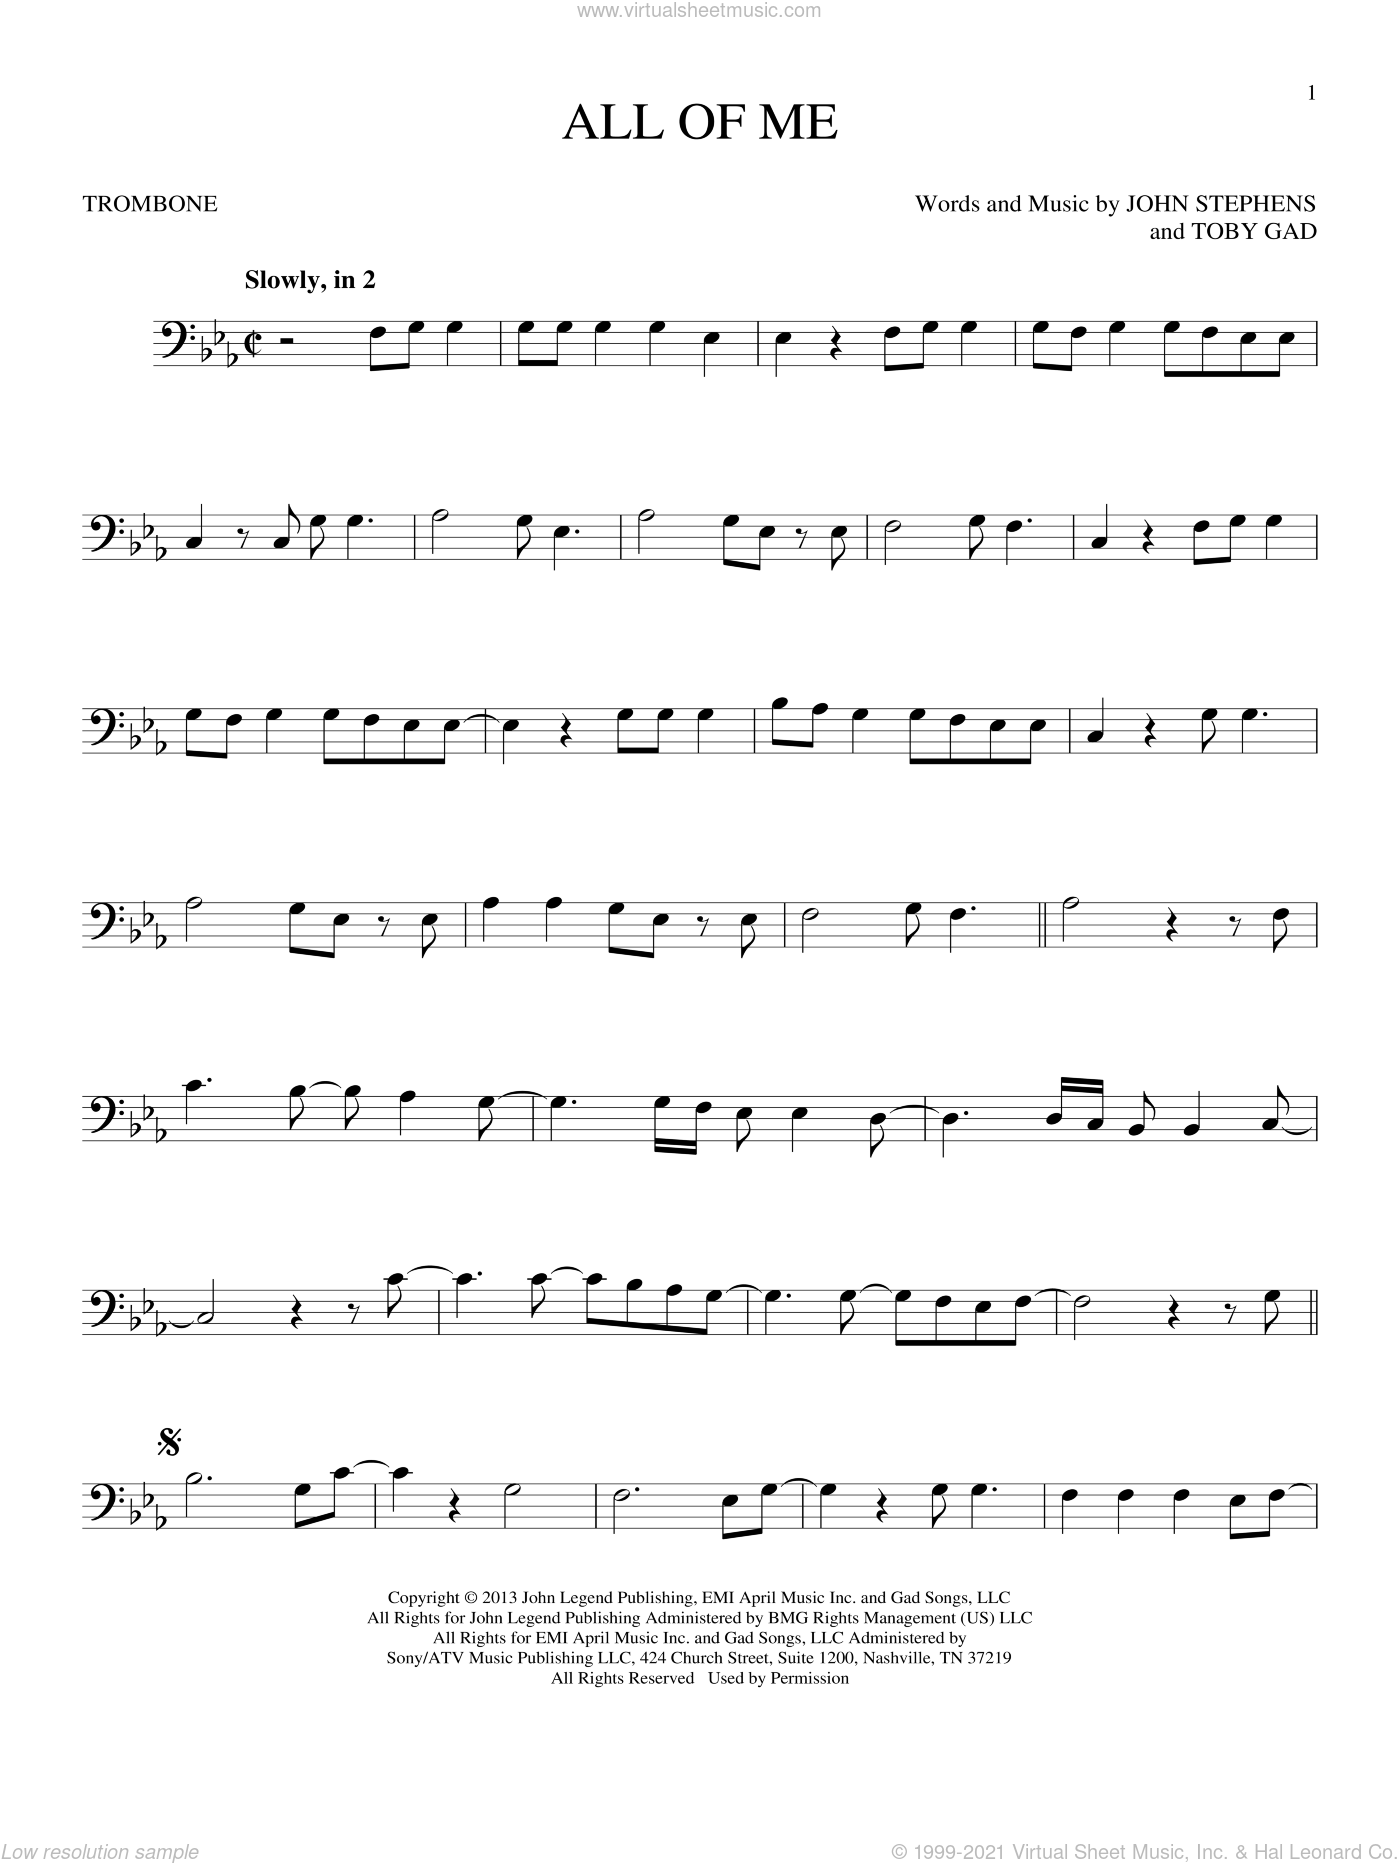 All Of Me sheet music for trombone solo by John Legend, John Stephens and Toby Gad, wedding score, intermediate